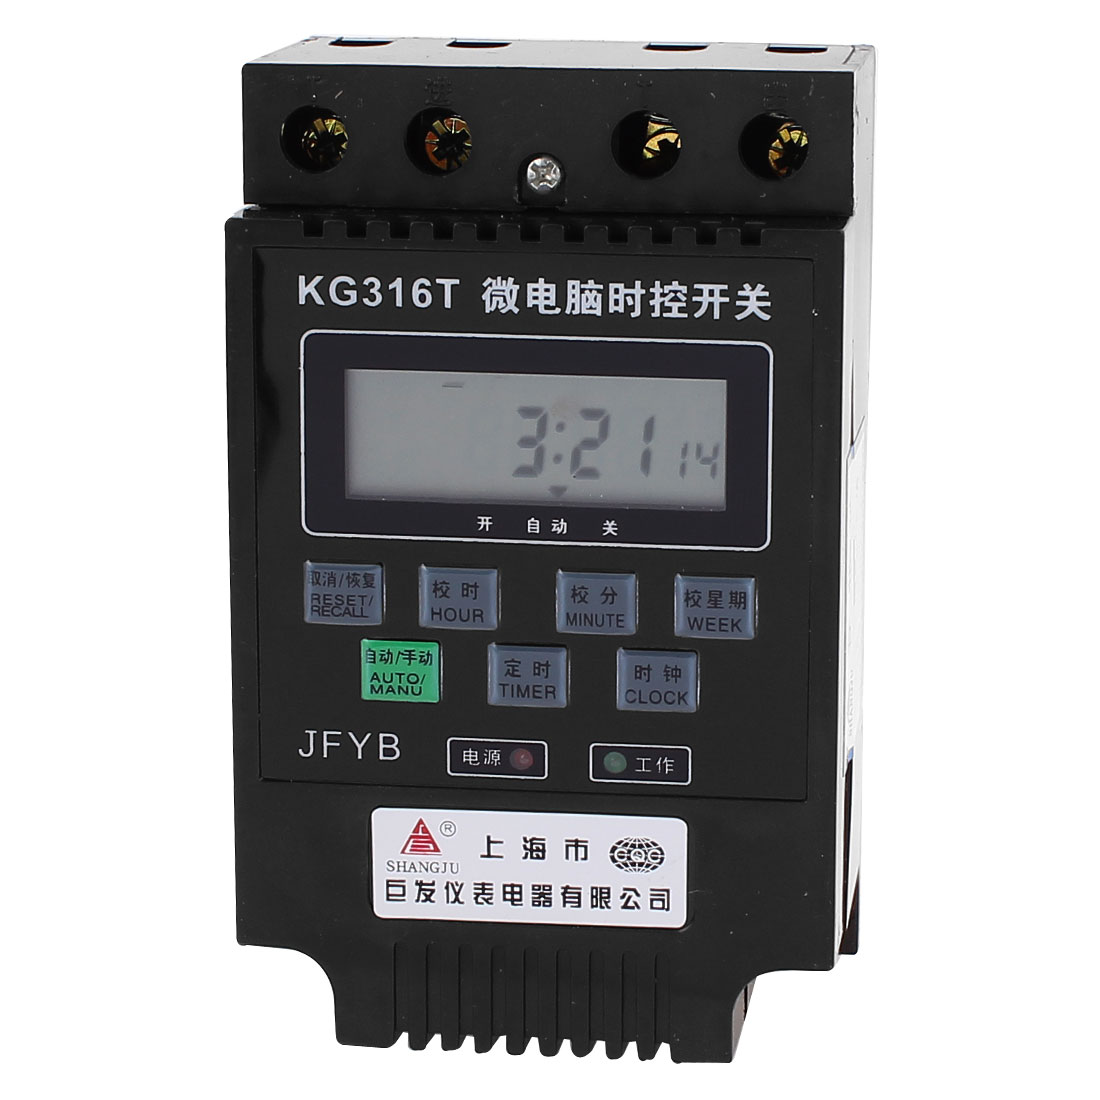 KG316T LED Display Automatic Controller Microcomputer Timer Switch 220V